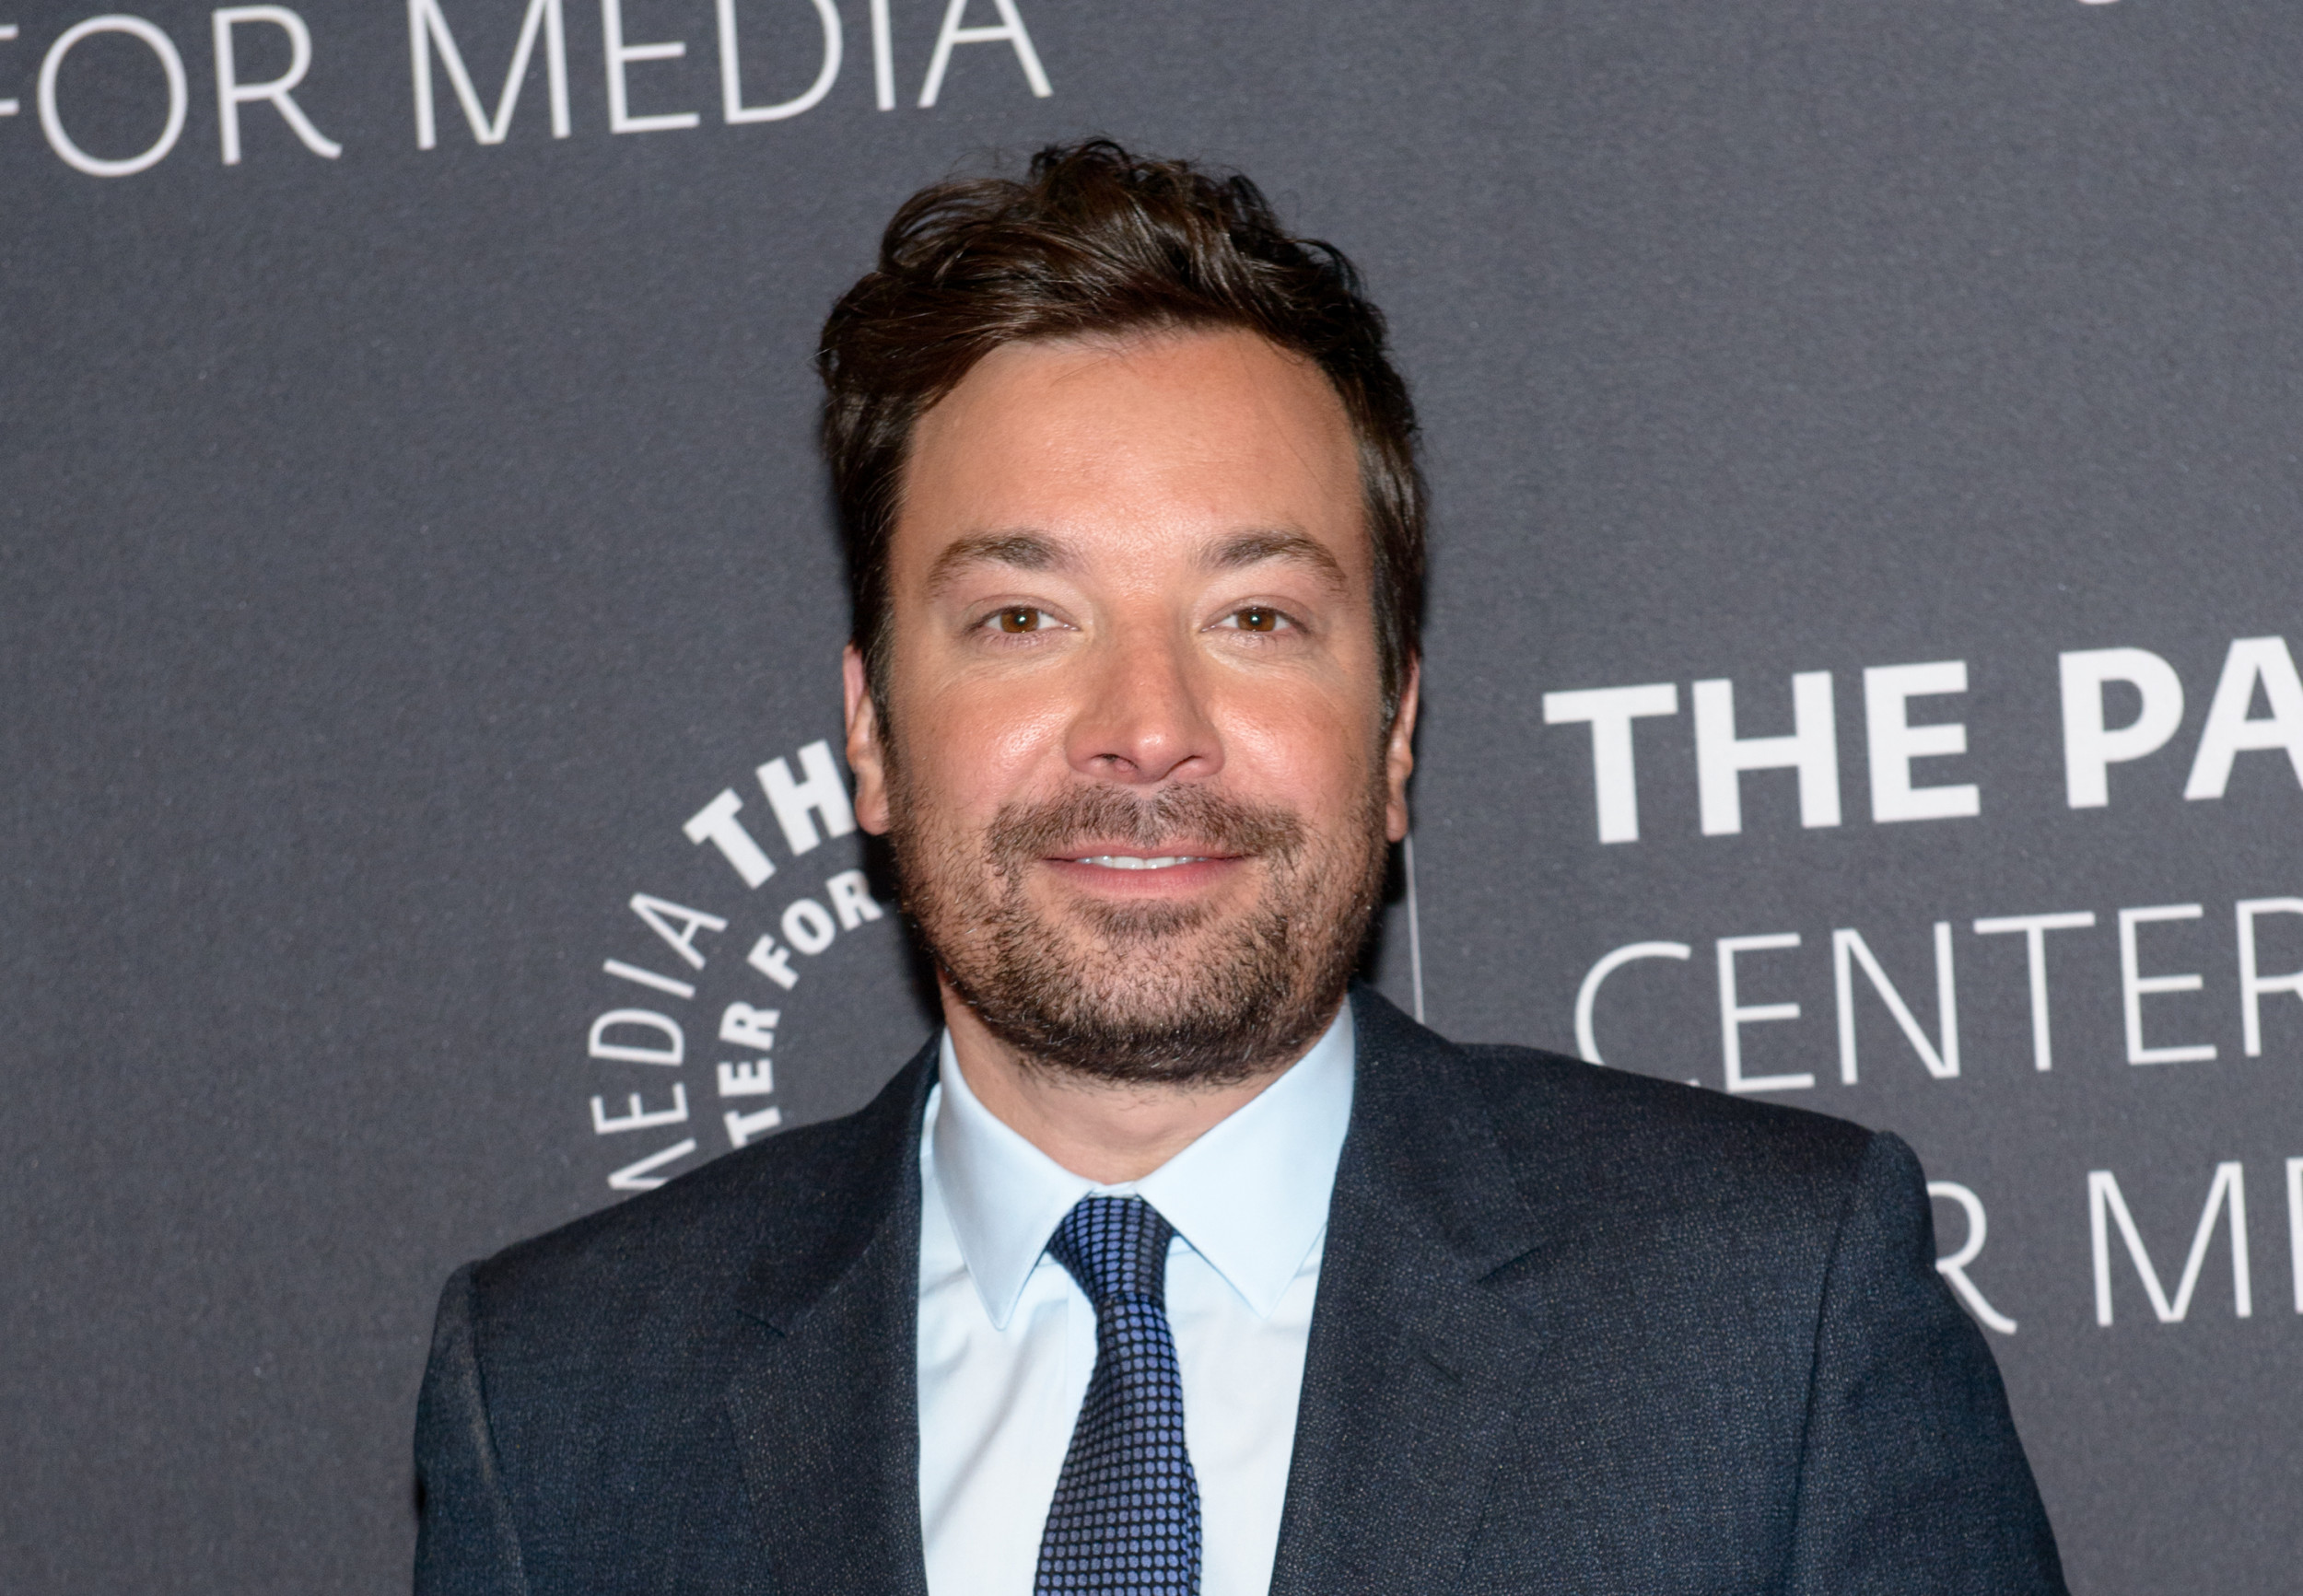 Jimmy Fallon Mocks Sidney Powell's Firing From Trump's Beautiful Group For 'Being Too Loopy'